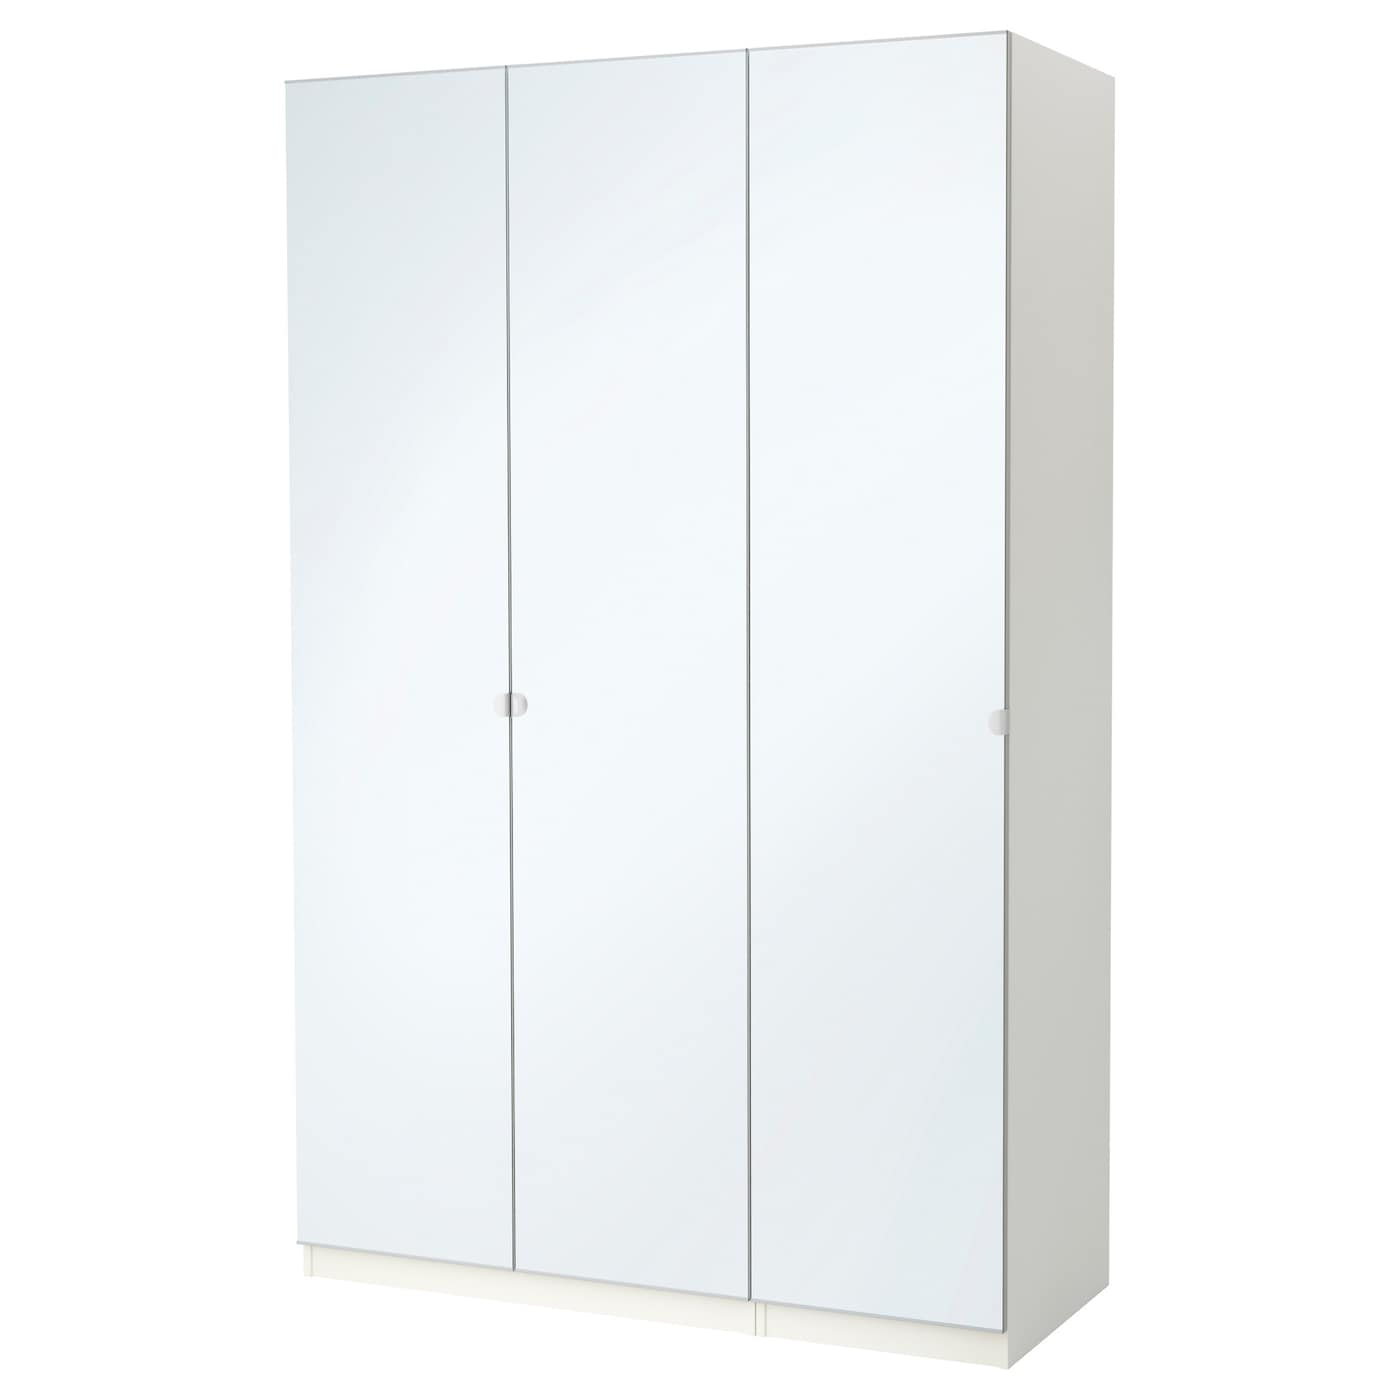 pax armoire penderie blanc vikedal miroir 150x60x236 cm ikea. Black Bedroom Furniture Sets. Home Design Ideas